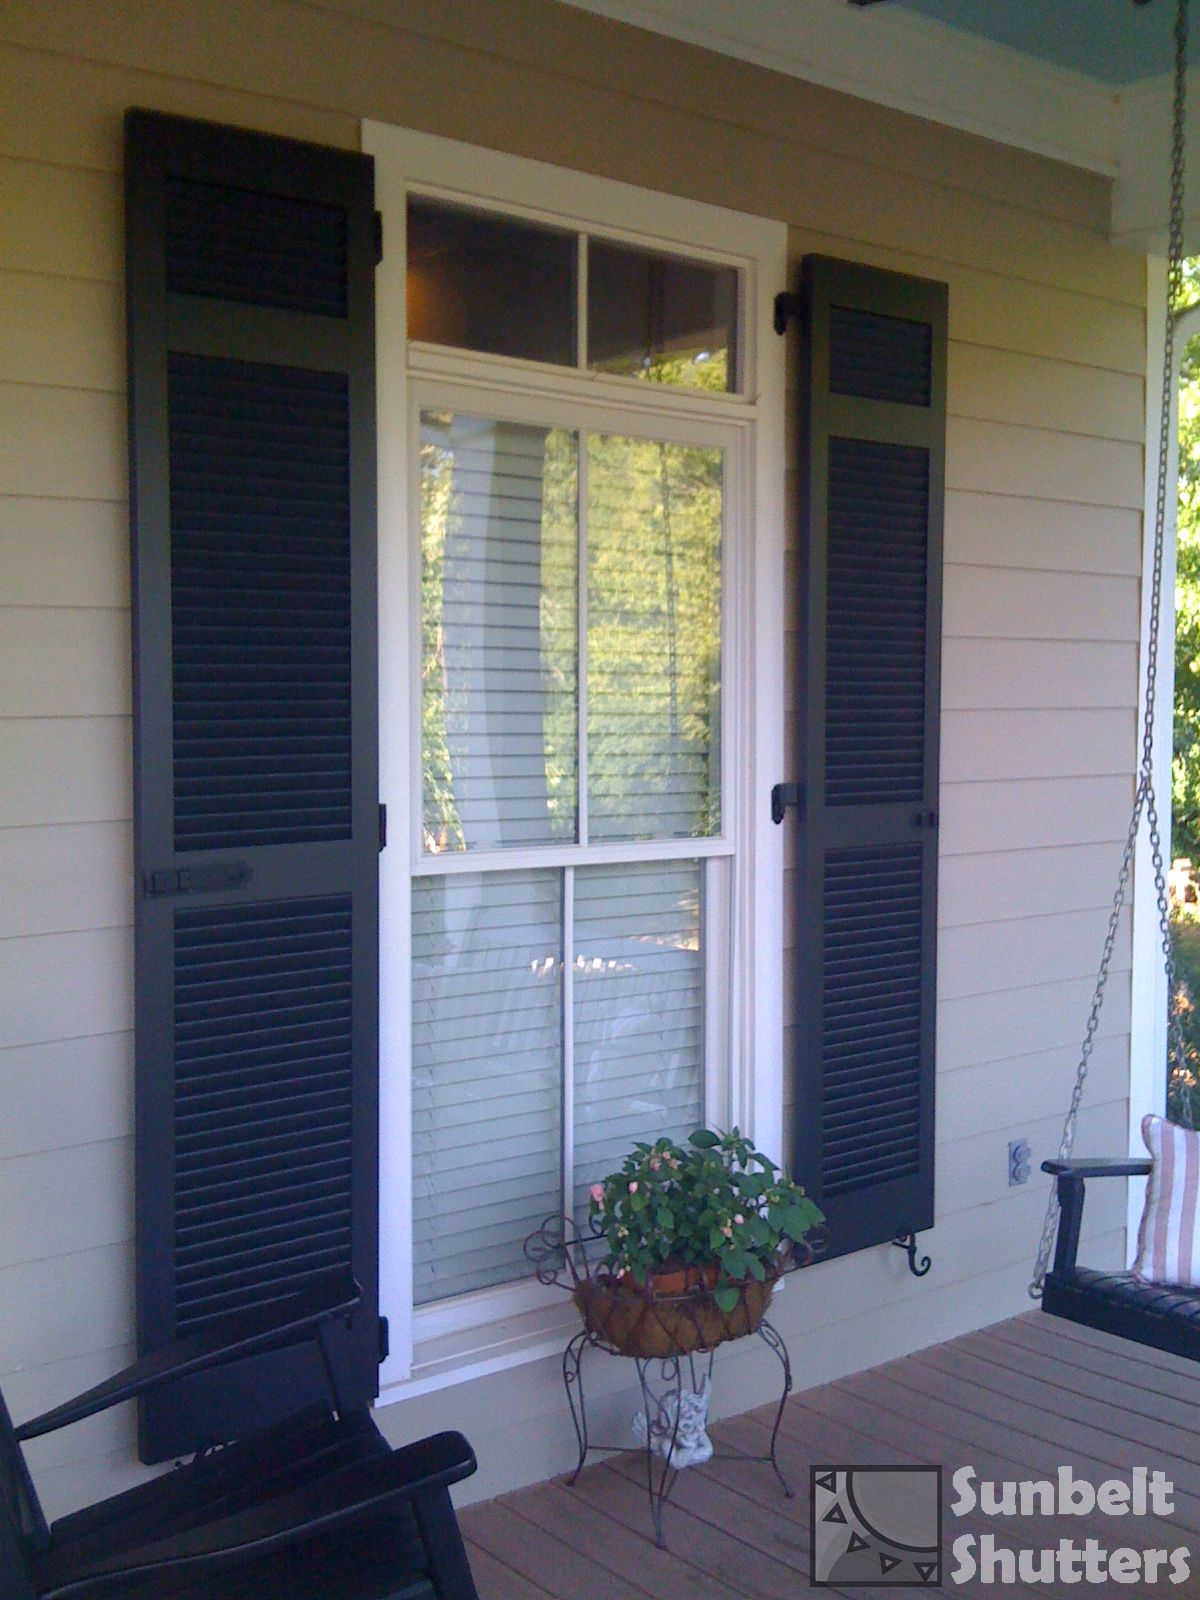 Top section of Louvered shutter nicely aligns with Transom Window